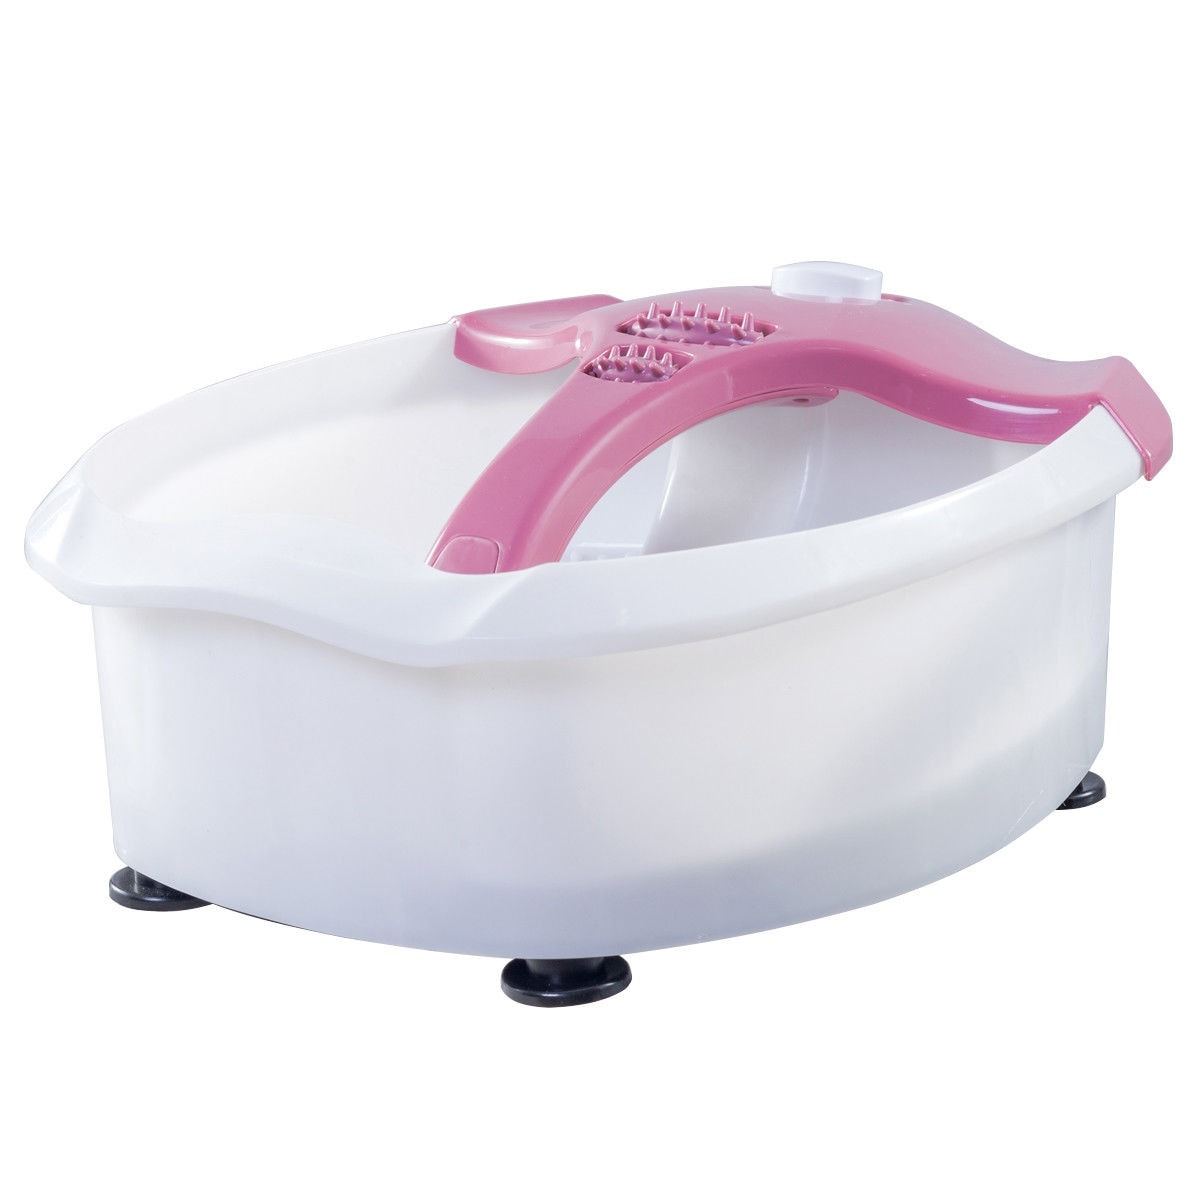 Shop Costway Electrical Foot Tub Basin Point Massage Health Spa Home ...